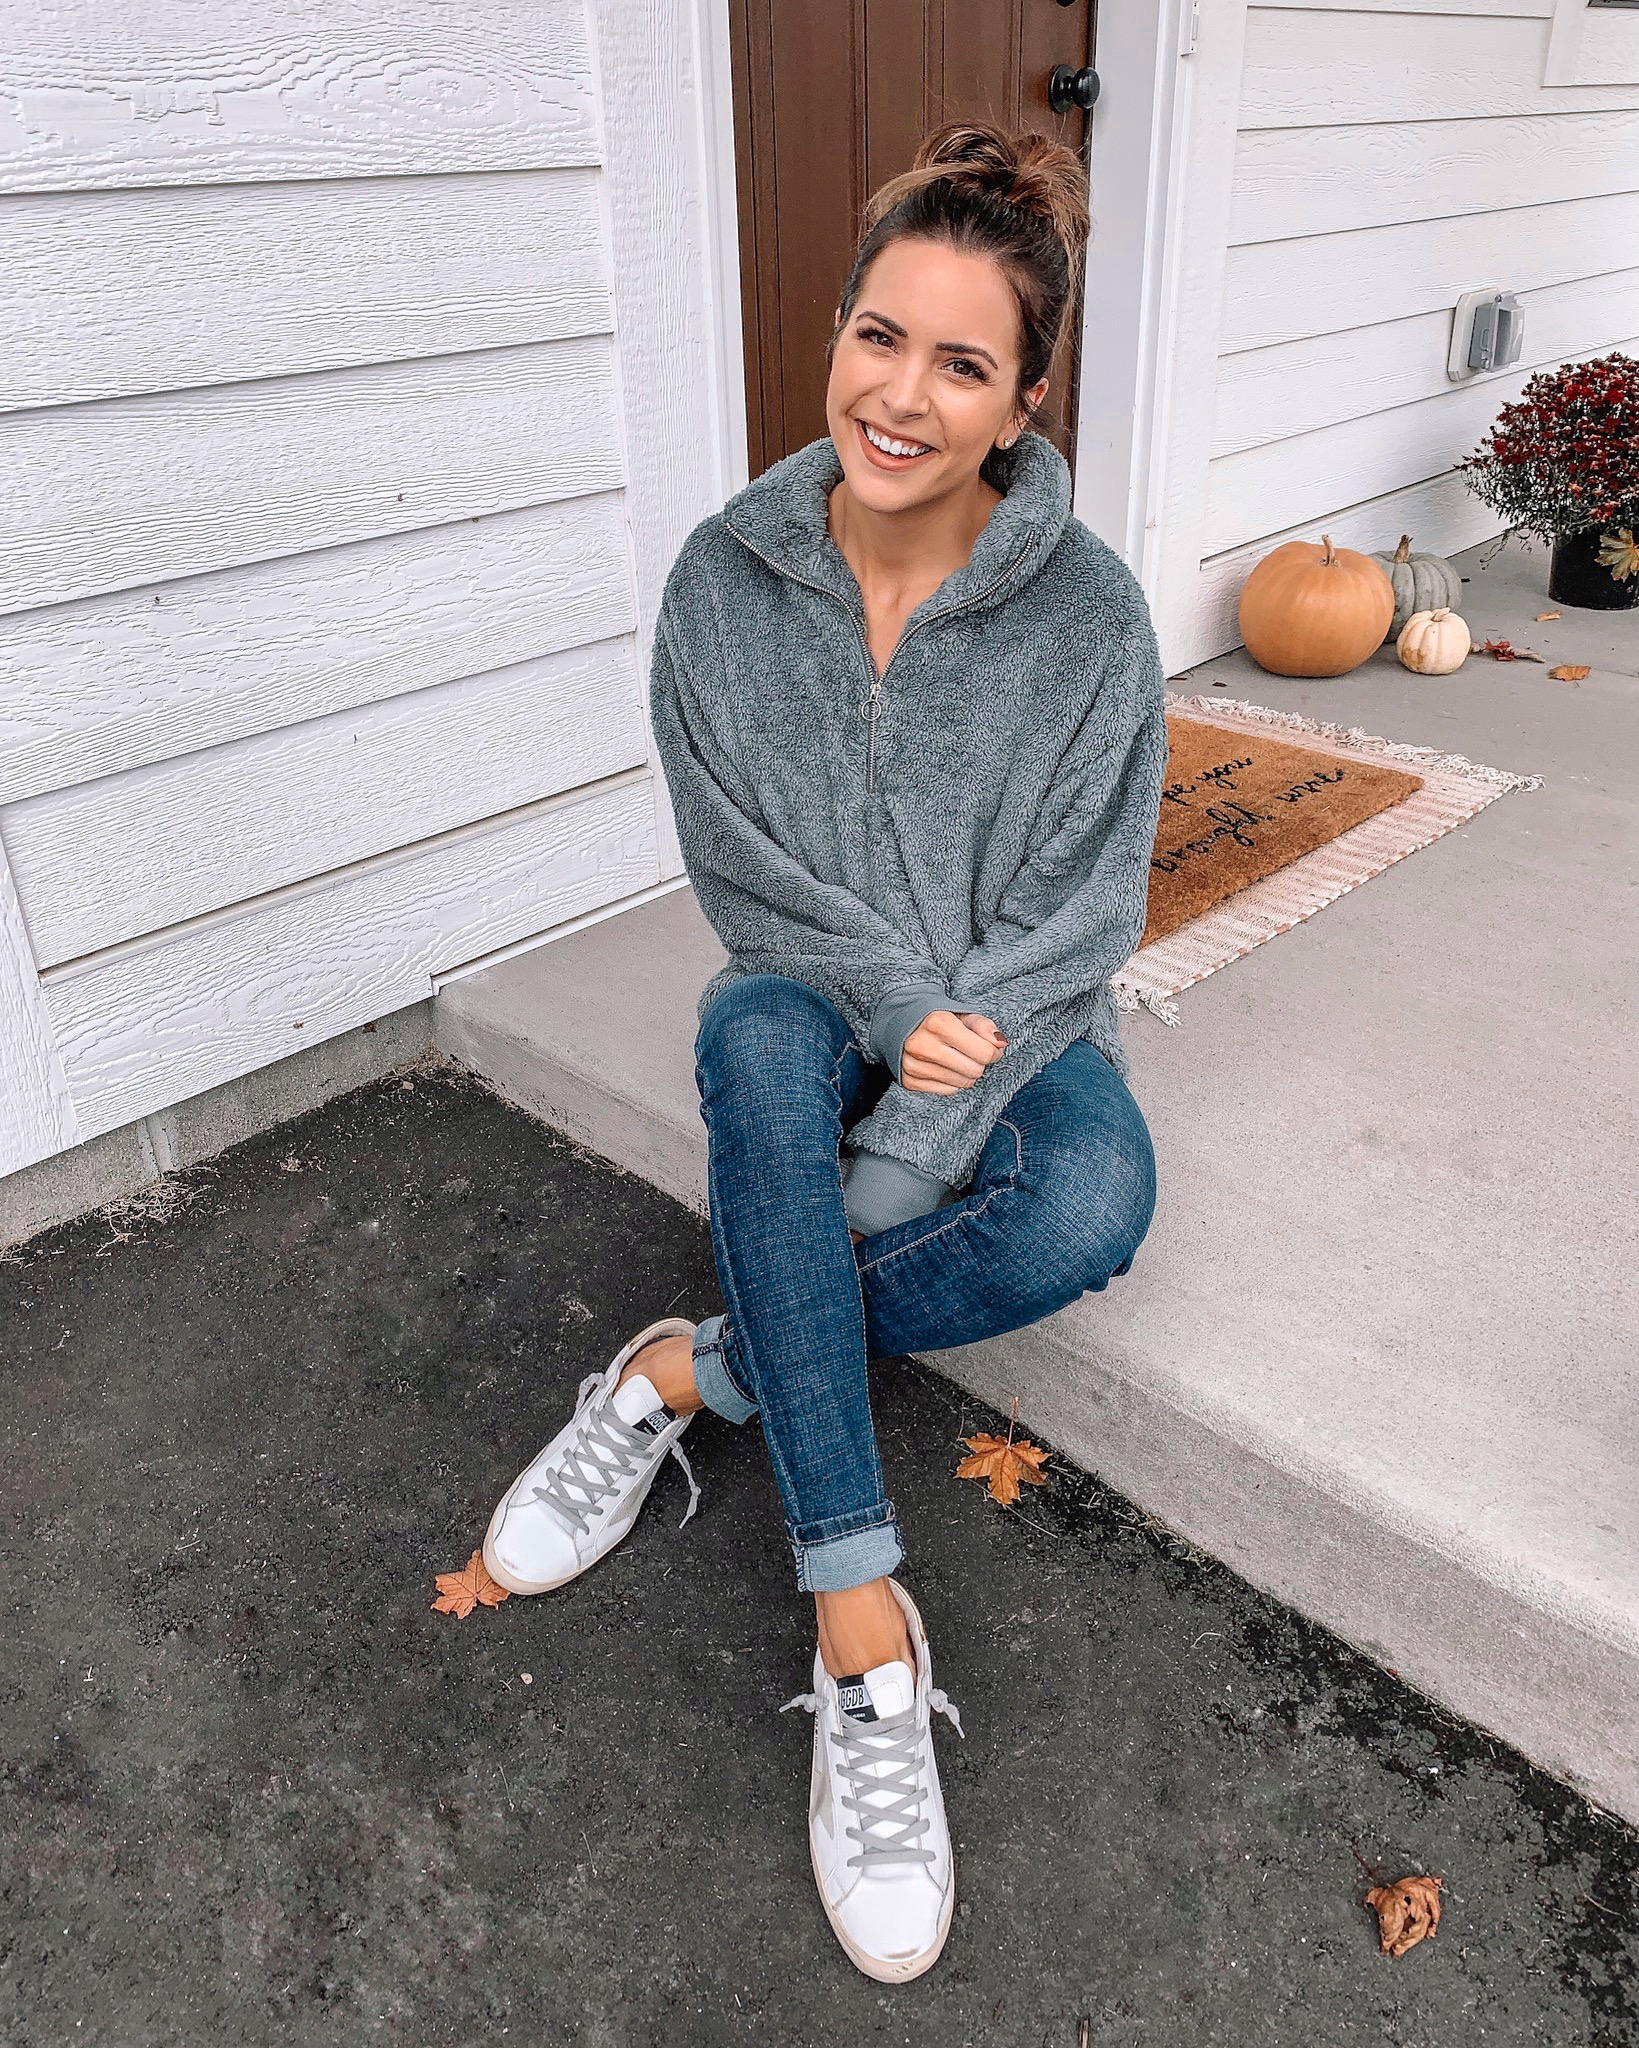 express Black Friday cyber Monday sale 2019. fleece pullover, affordable fashion, winter fashion, cozy outfit, athleisure outfit, Minneapolis blogger